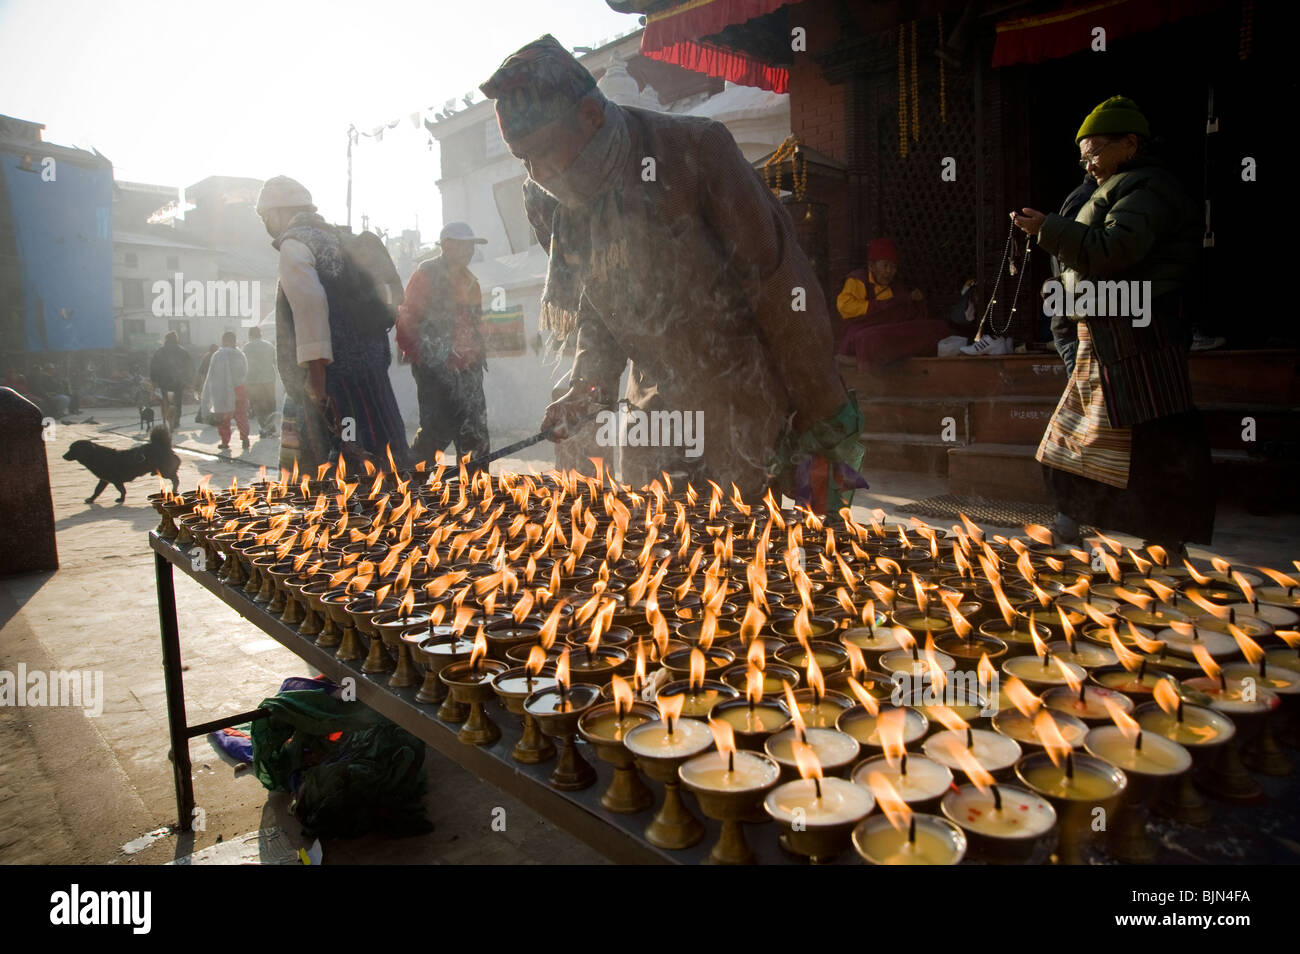 A man lighting candles outside the entrance to Boudhanath stupa in Kathmandu, Nepal - Stock Image